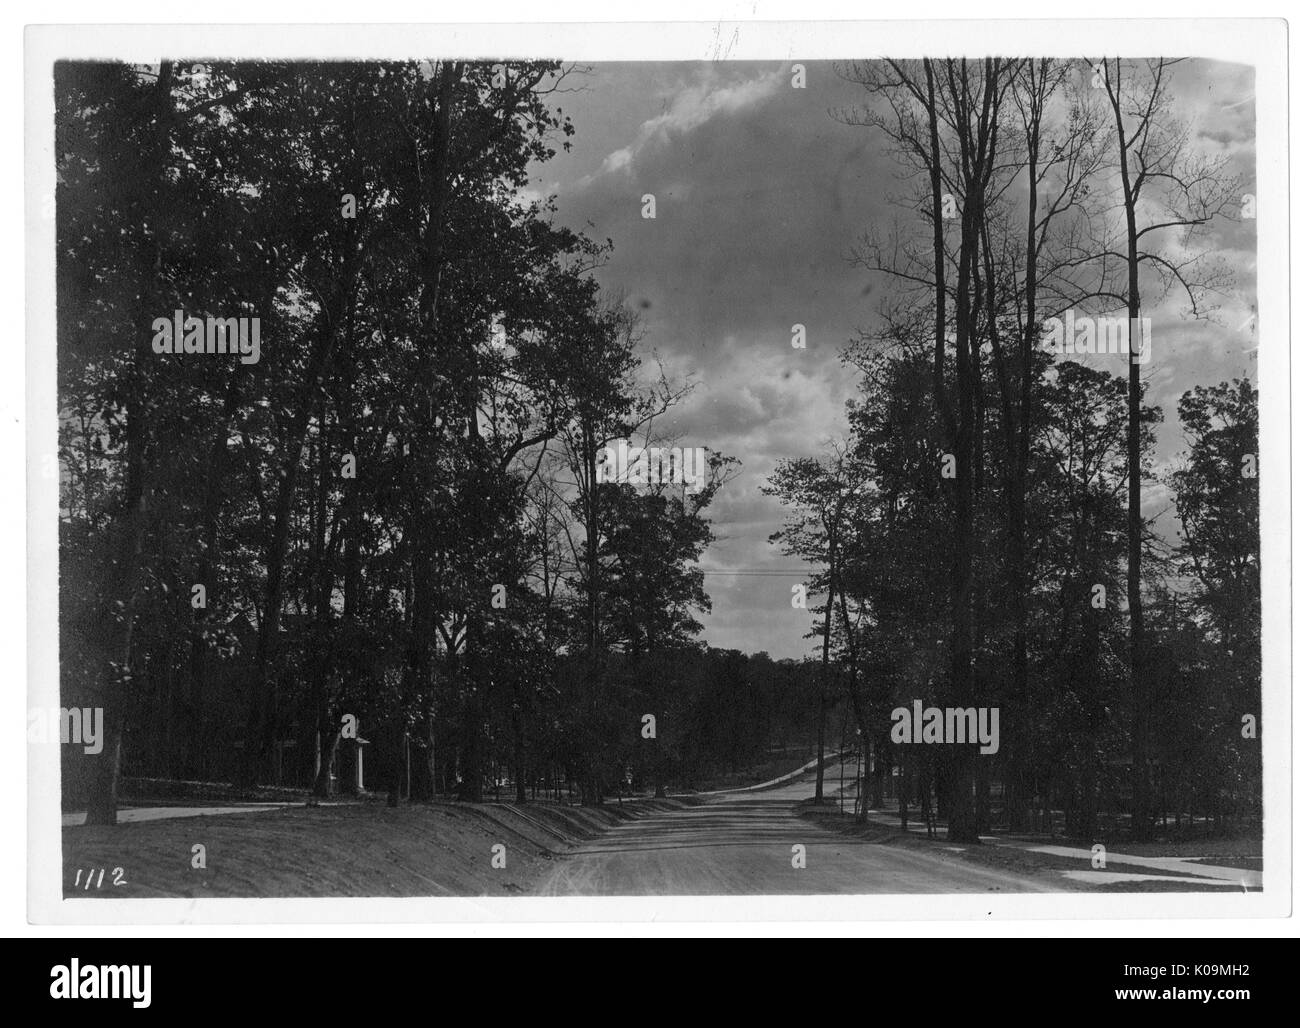 Landscape shot of a road lined by tall trees with leaves, many clouds in the sky, Roland Park/Guilford, Baltimore, Maryland, 1910. This image is from a series documenting the construction and sale of homes in the Roland Park/Guilford neighborhood of Baltimore, a streetcar suburb and one of the first planned communities in the United States. The neighborhood was segregated, and is considered an early example of the enforcement of racial segregation through the use of restricted covenants. - Stock Image